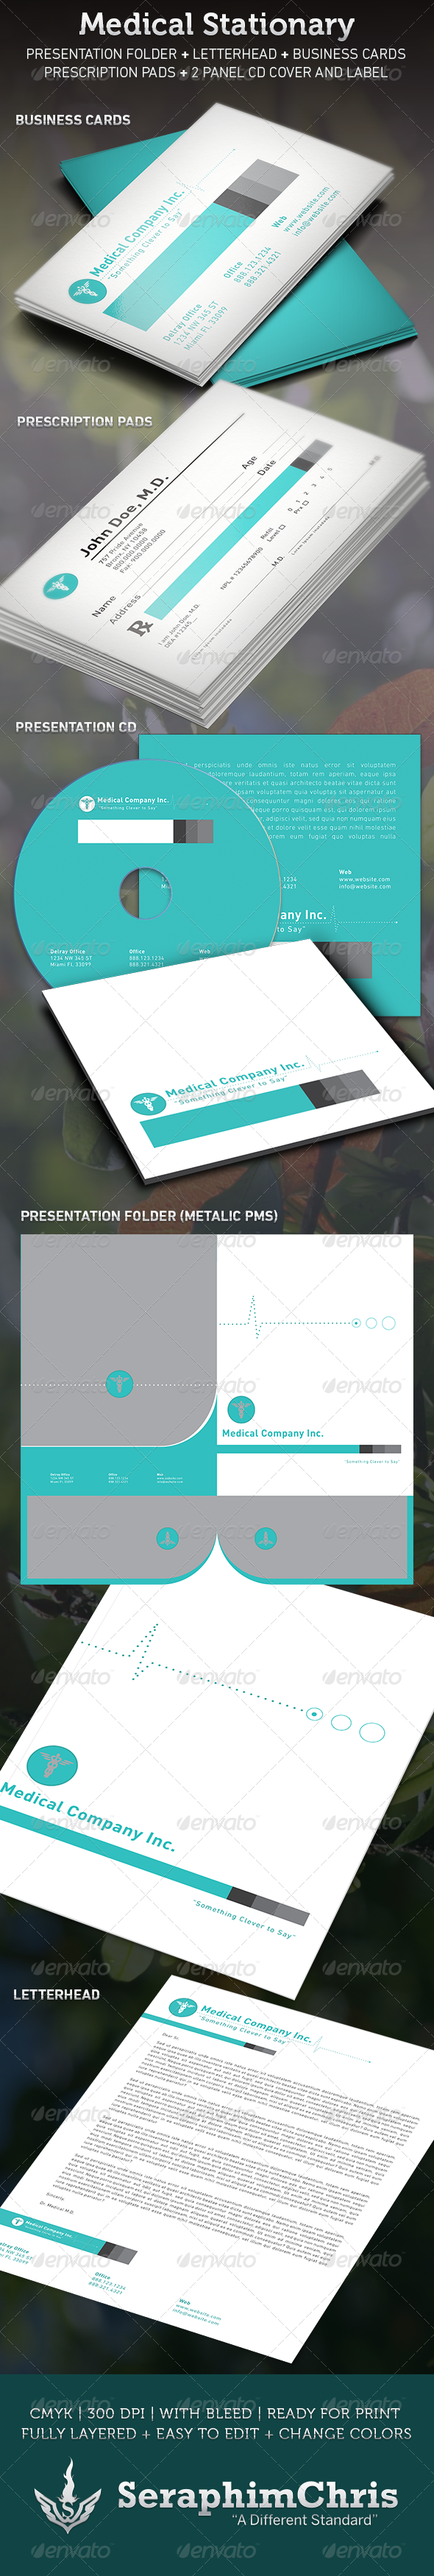 GraphicRiver Medical Stationary Template 3507363